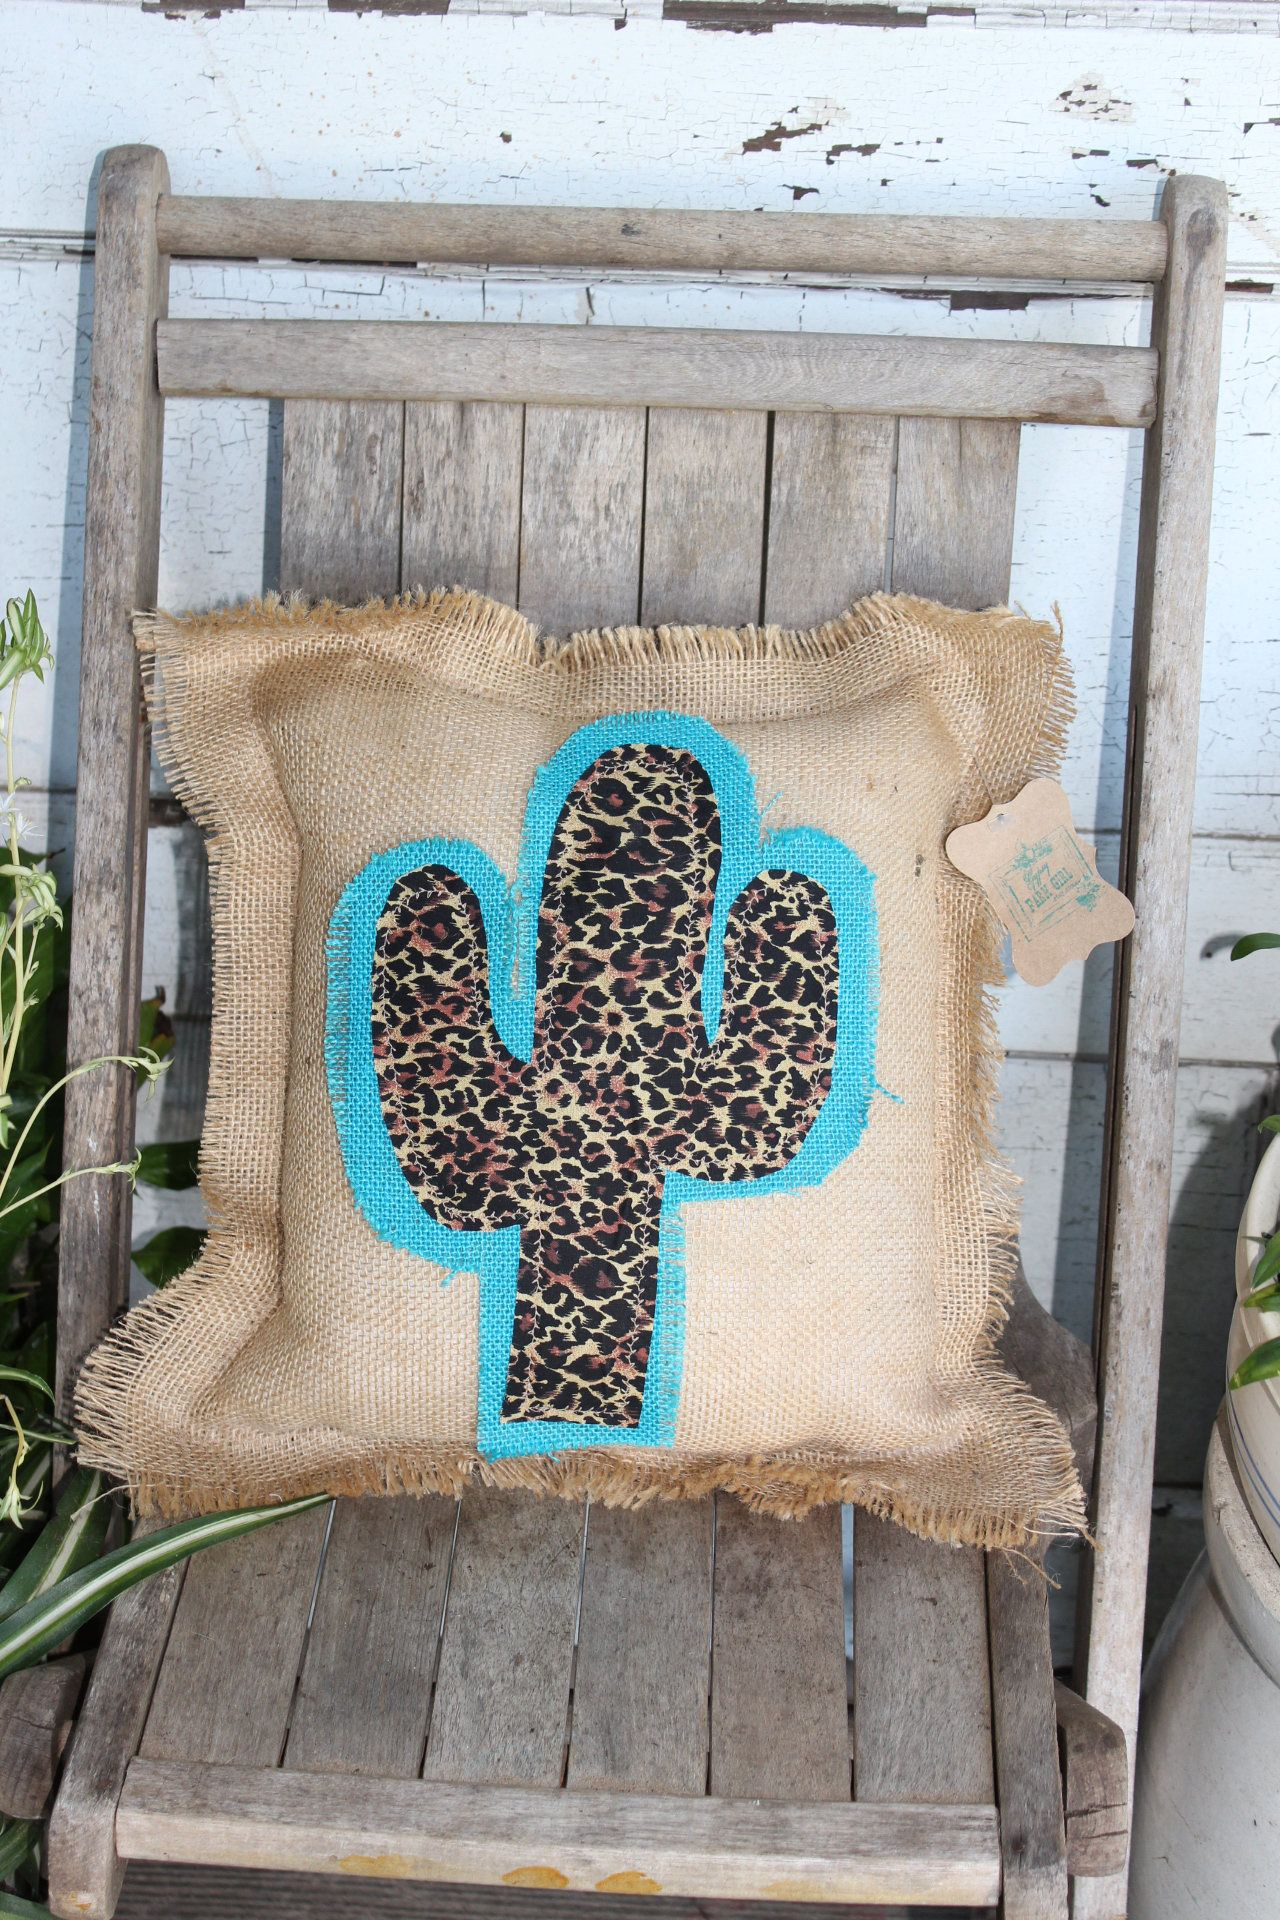 Turquoise & Leopard Cactus Pillow, burlap pillow with cactus, accent pillow, throw pillow, animal print, wanderlust, turquoise cactus